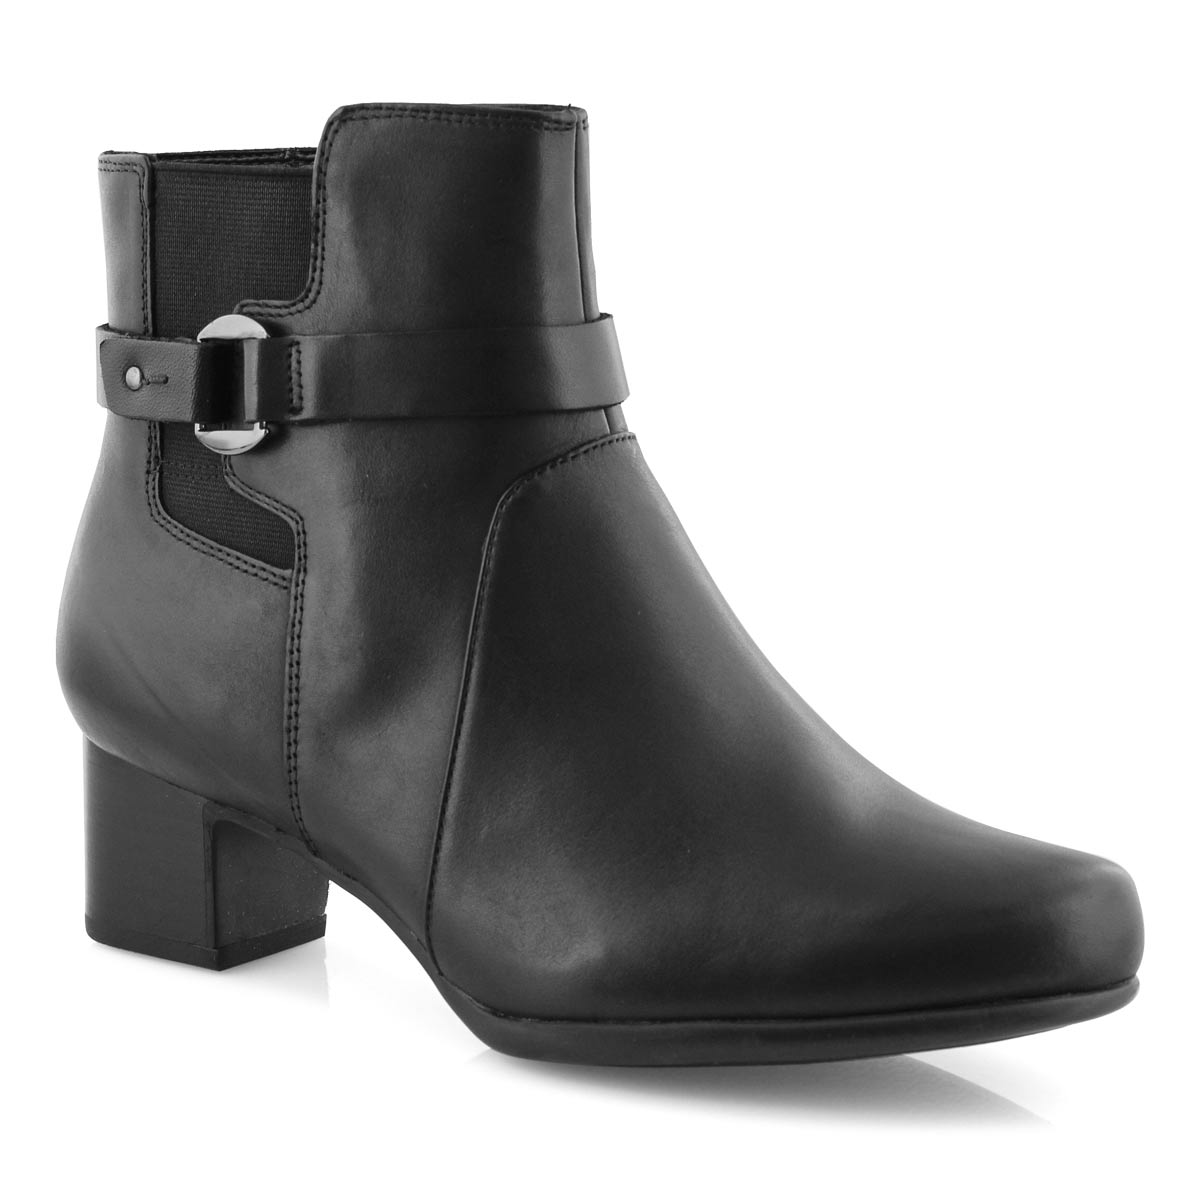 Lds Un Damson Mid blk wp ankle boot-wide